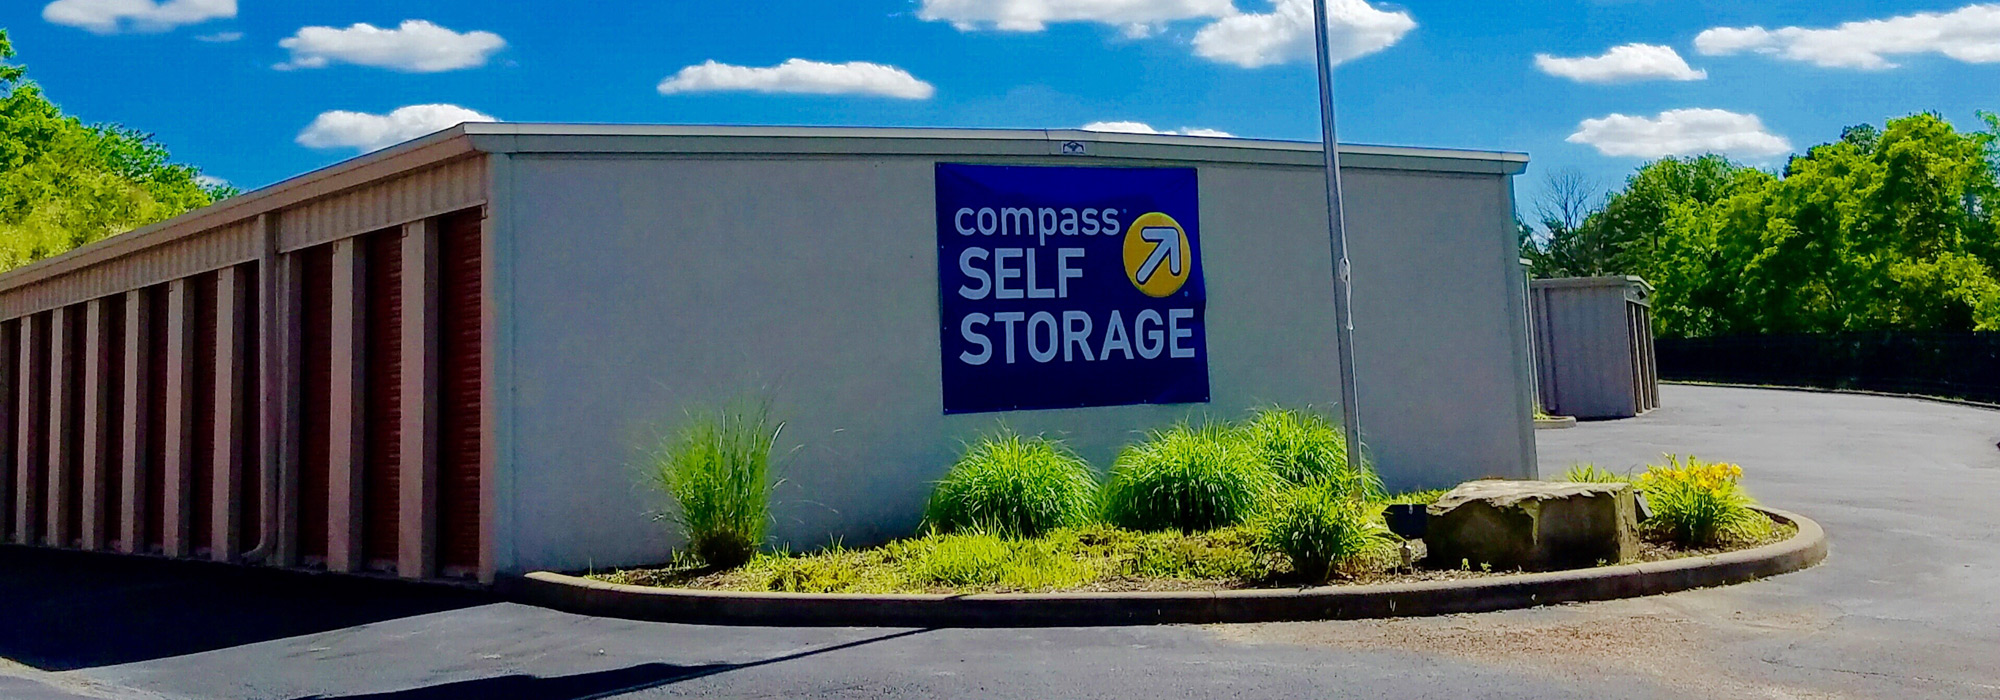 Self storage in Cold Spring KY